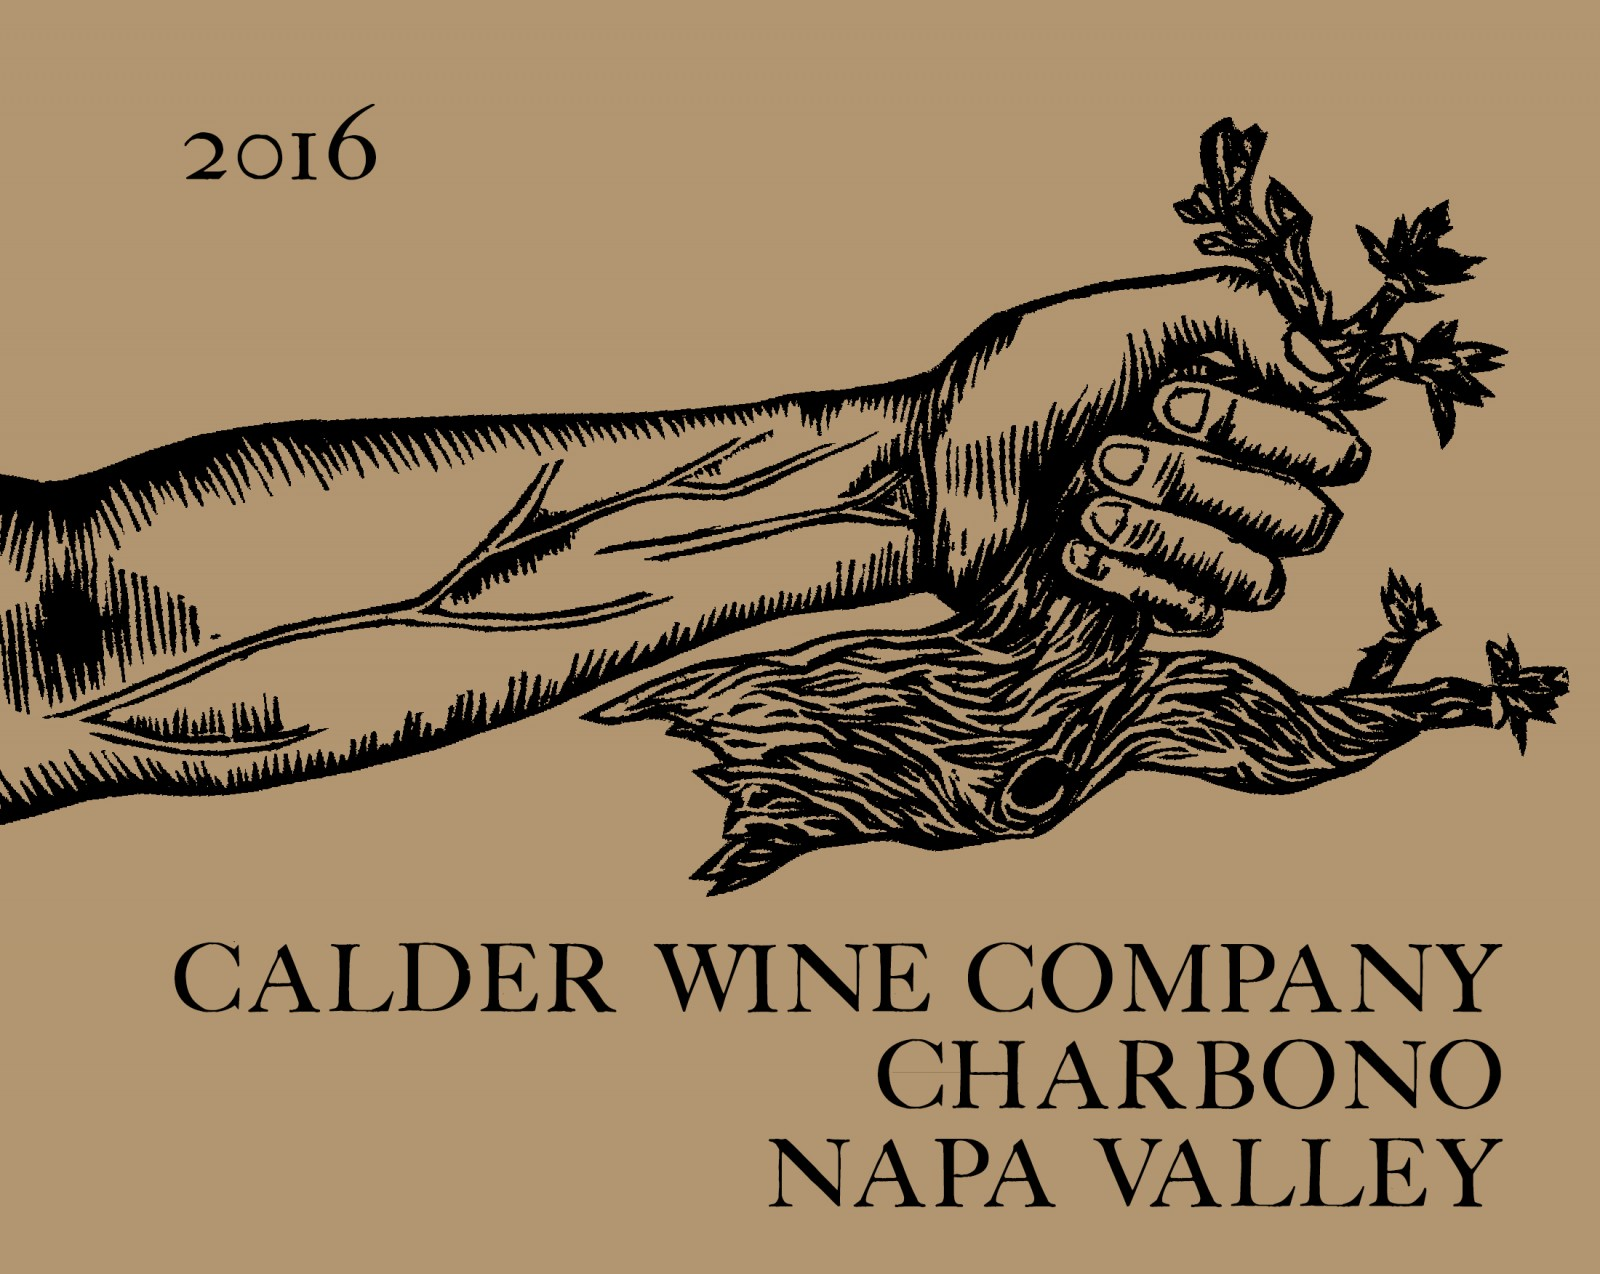 2016 Charbono Rutherford, Napa Valley - Calder Wine Company